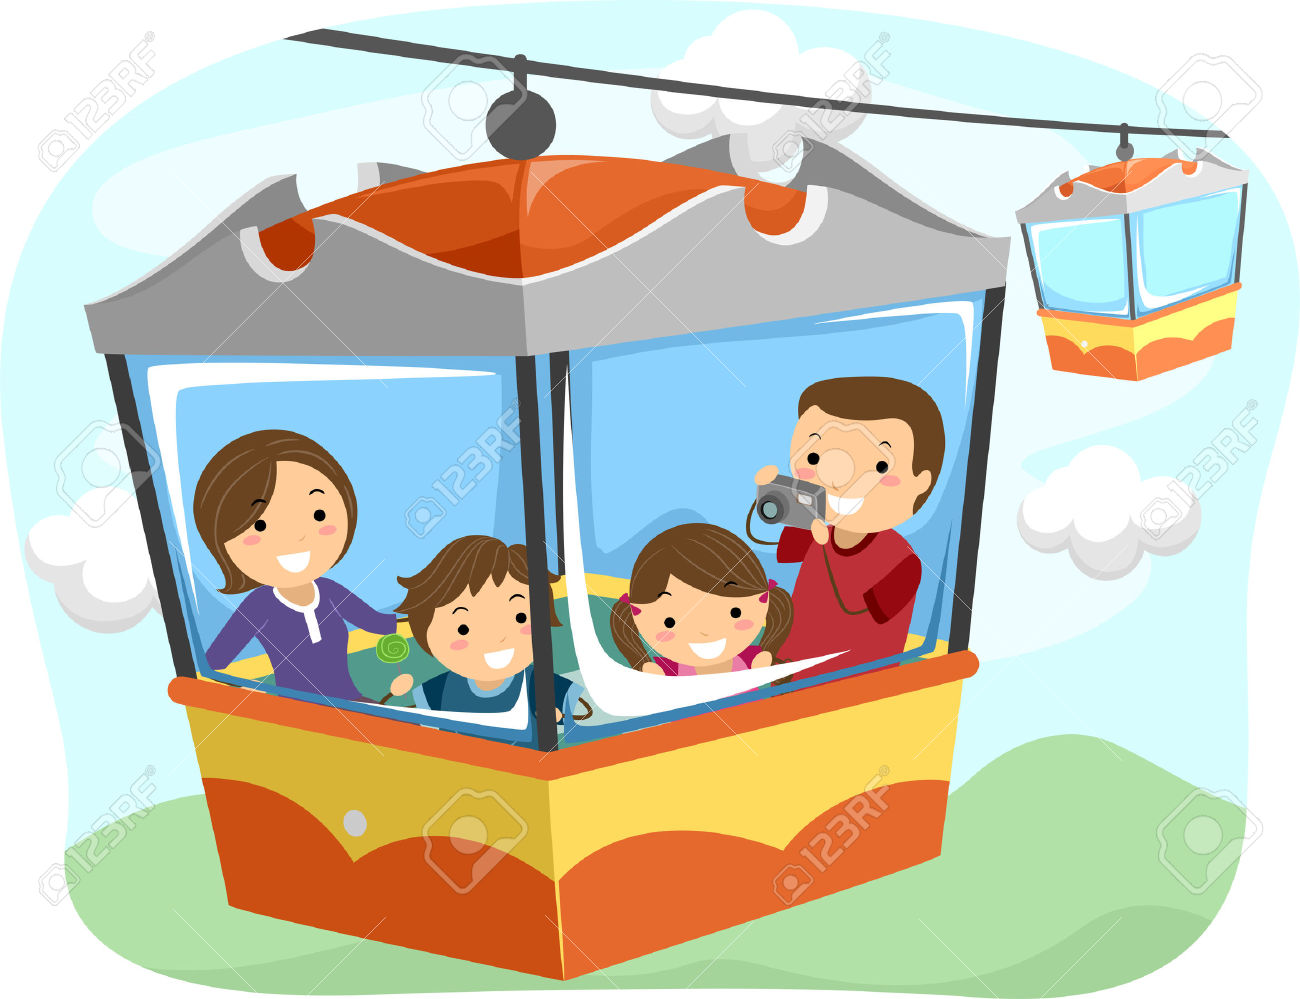 Illustration Of A Stickman Family Riding A Cable Car Stock Photo.